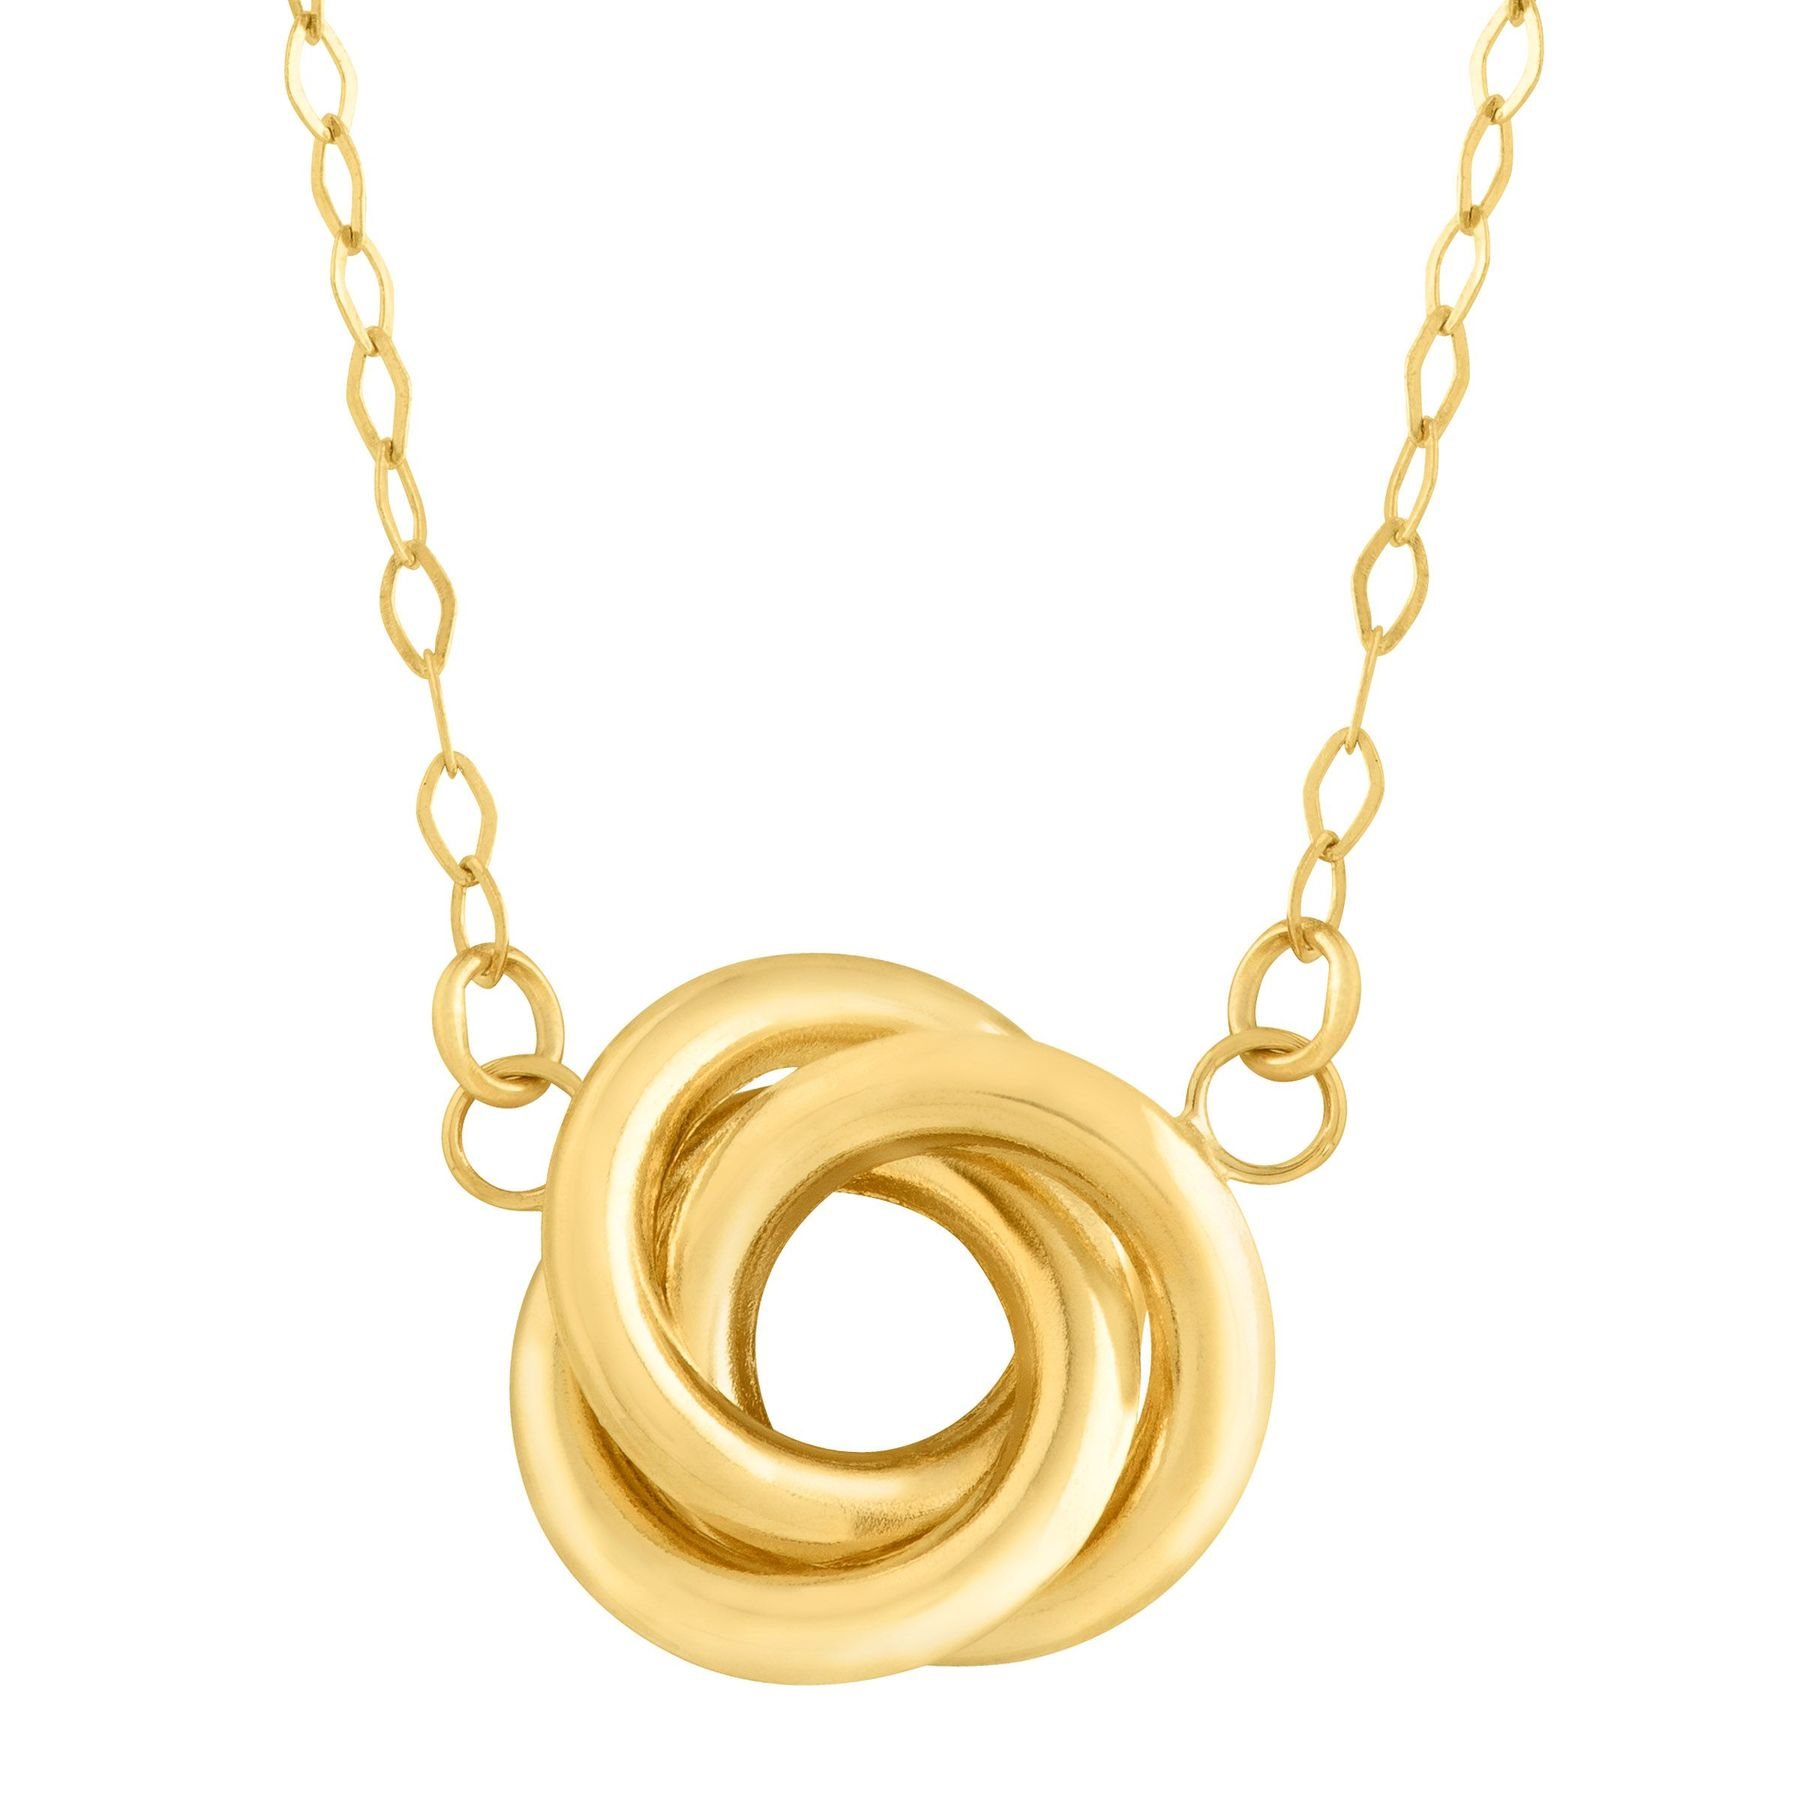 glorious endless enlarged ro and me products necklace knot jewelry pendant necklaces